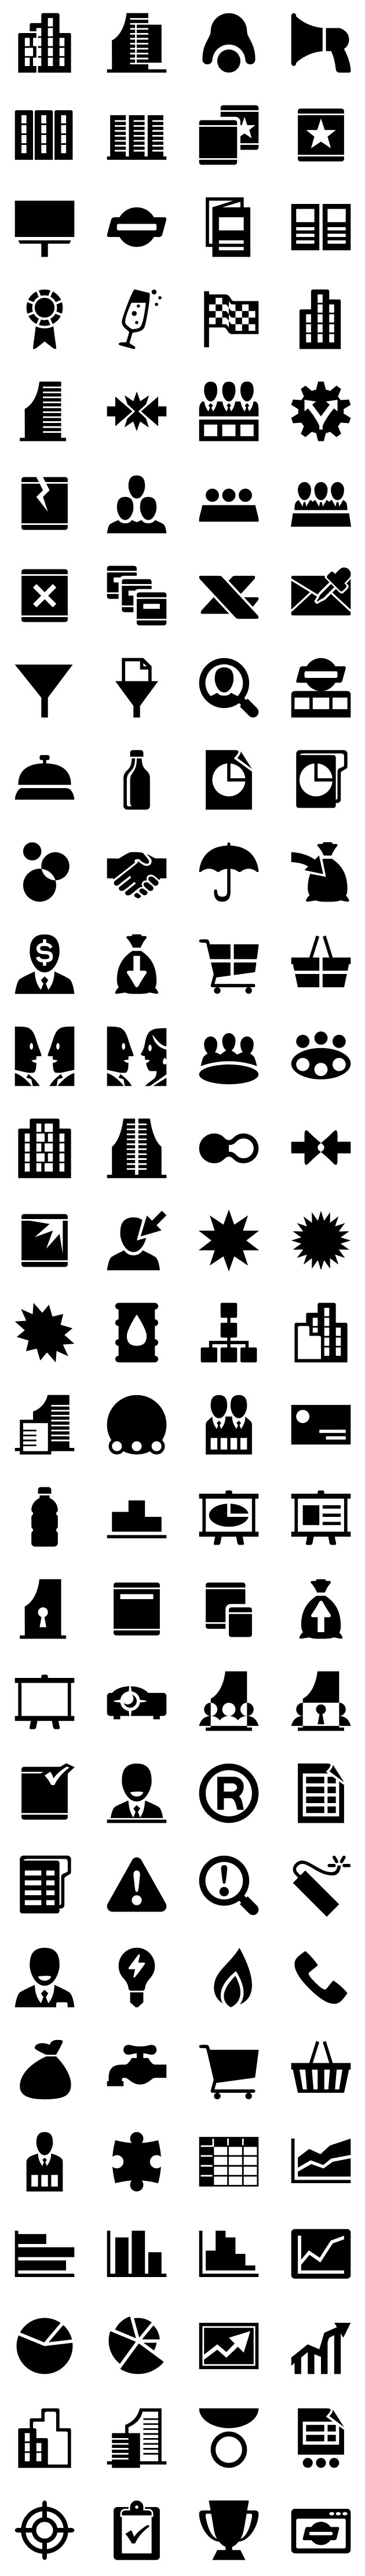 iphone icons business 114px